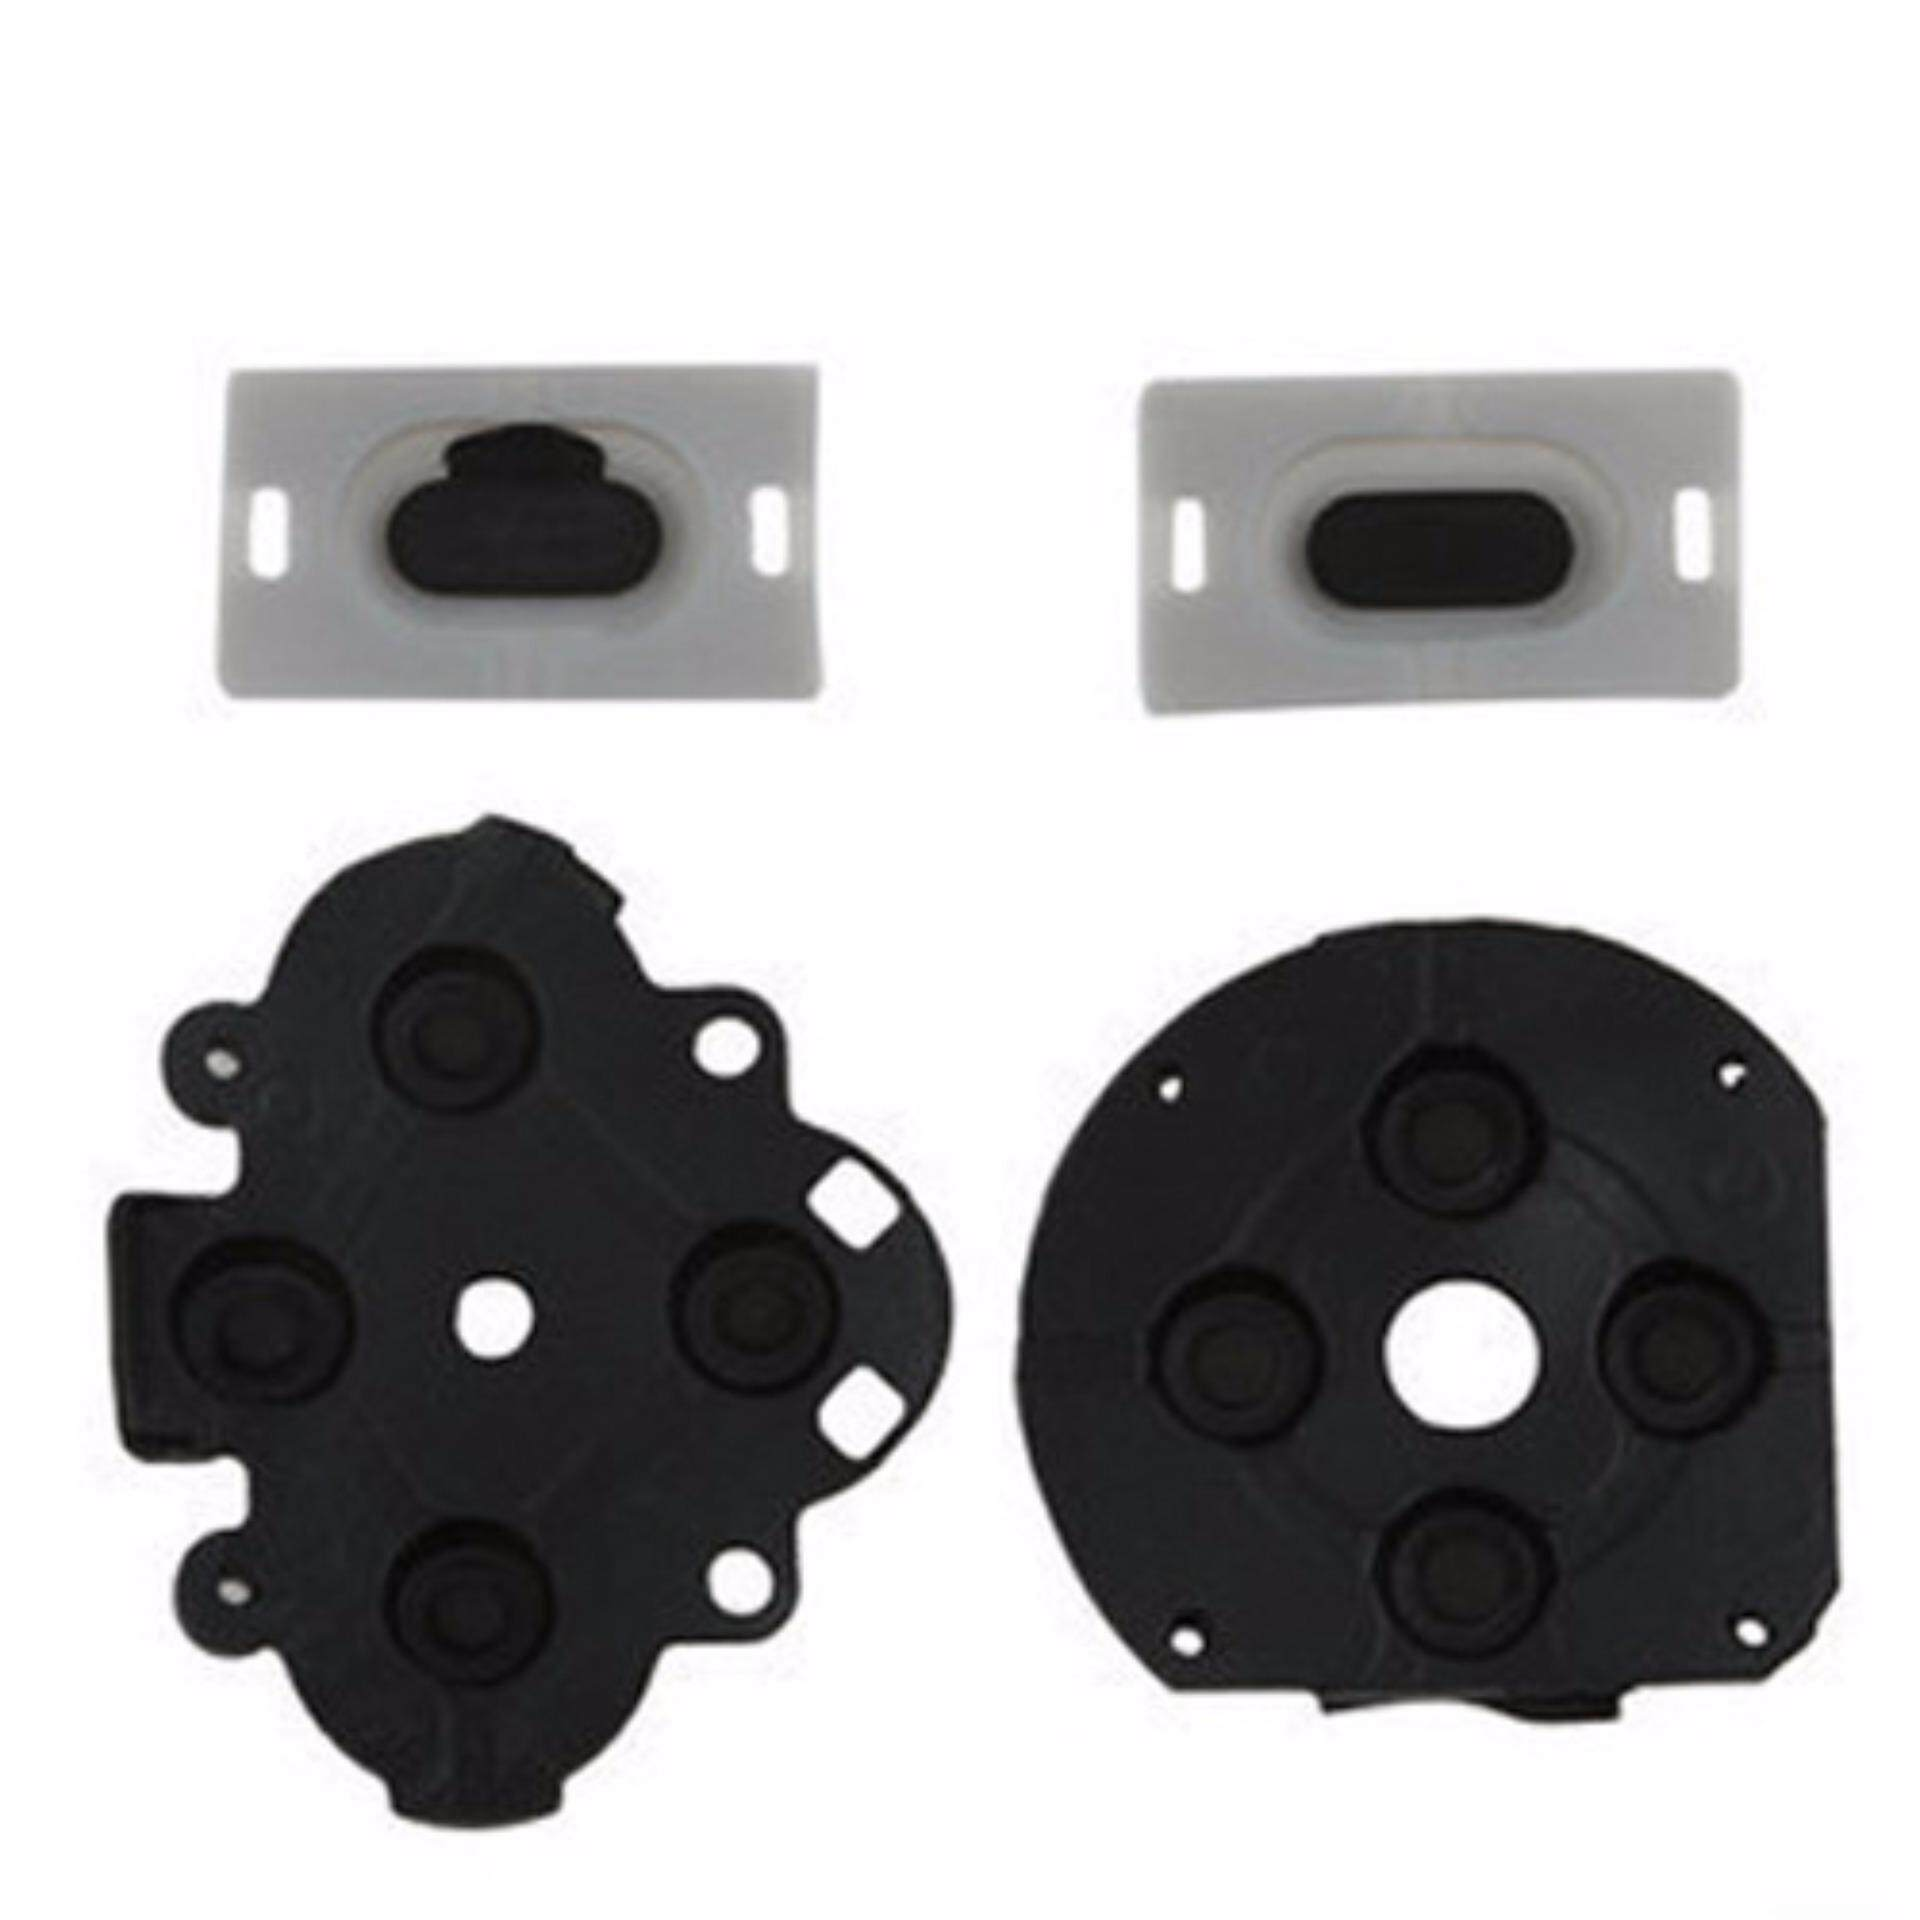 Silicone Rubber Conductive Contact Button D-Pad Pads Repair For PSP1000